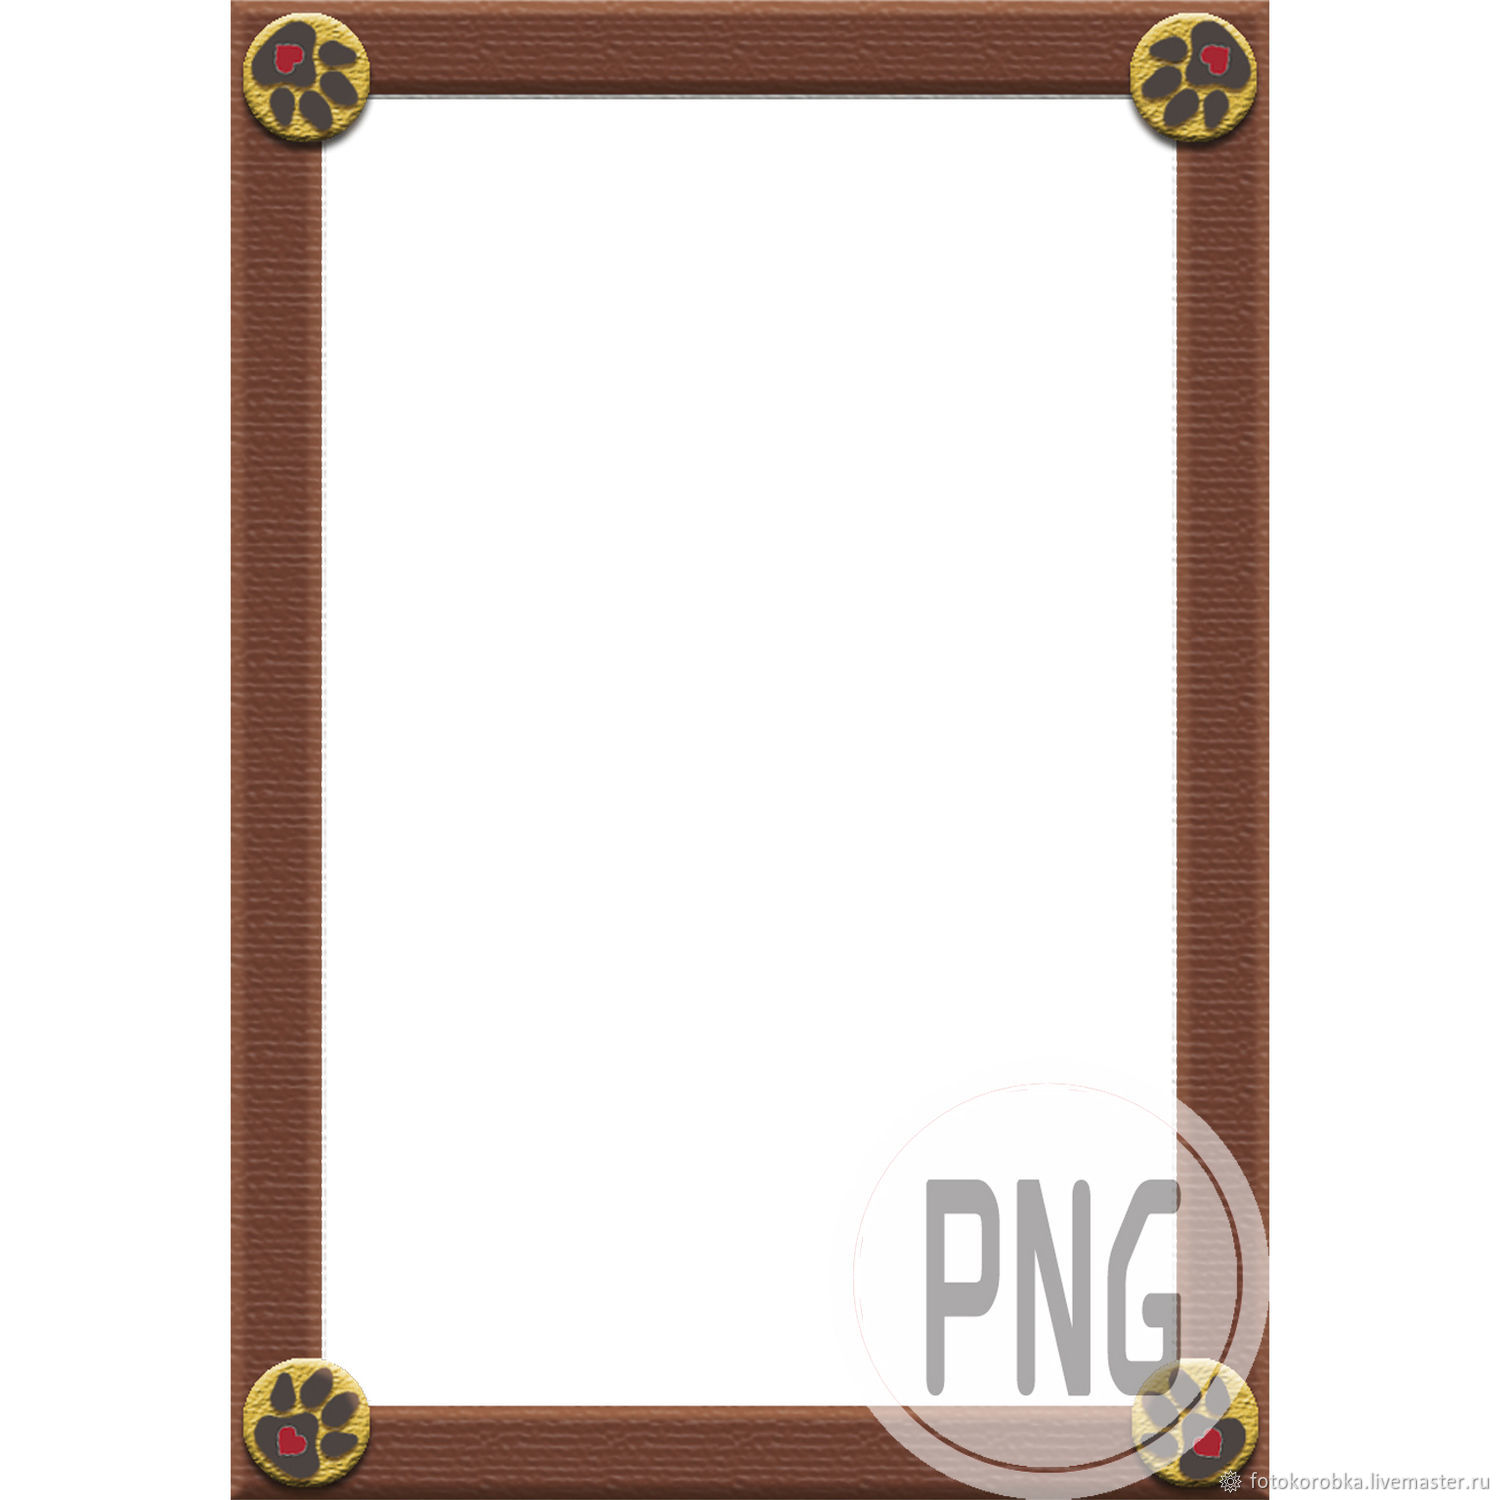 Photo frame in PNG format-paws, Photo, Moscow,  Фото №1